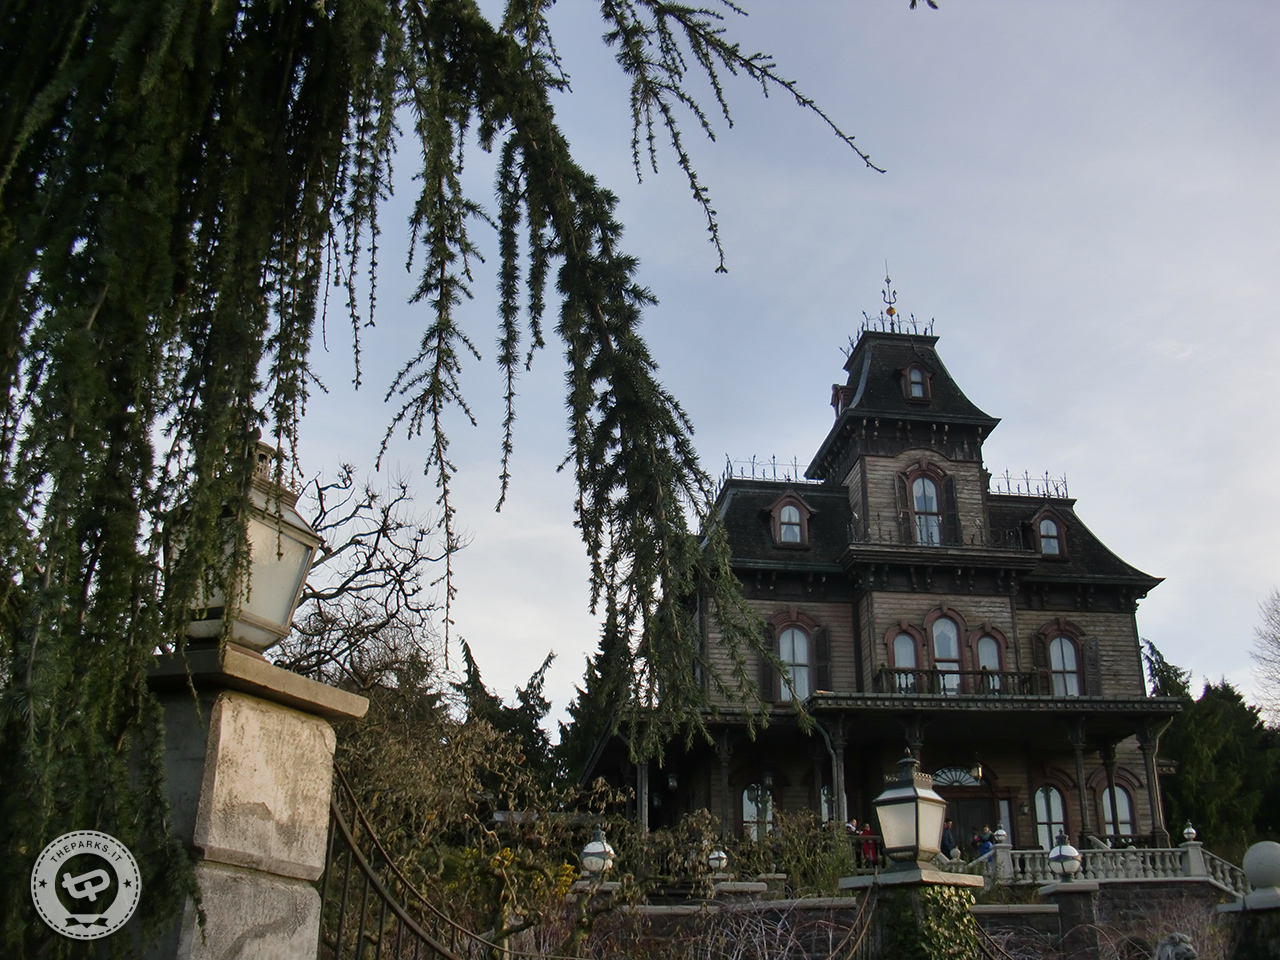 Disneyland Park Paris Uomo muore nella Haunted Mansion